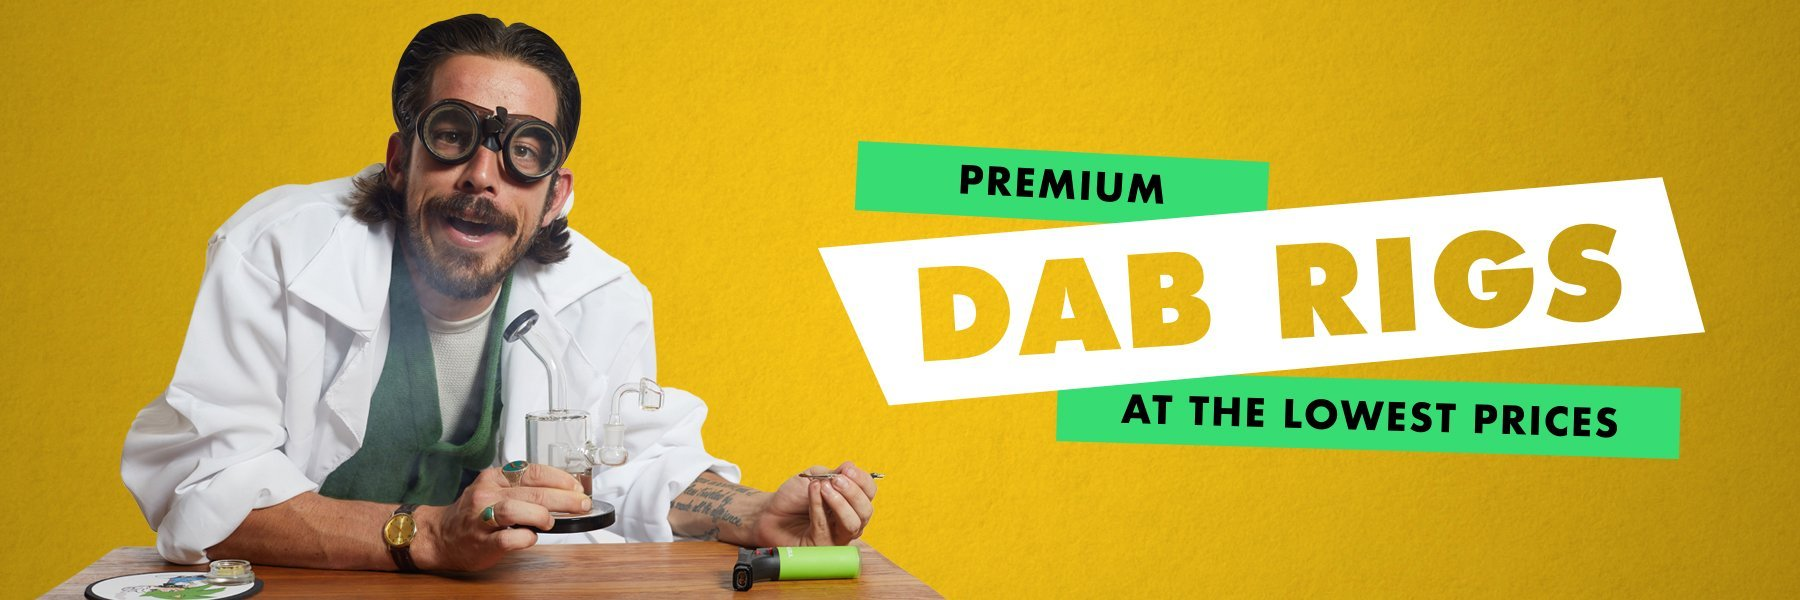 Cheap Dab Rigs under $50 - electric, glass, silicone dab rigs and more